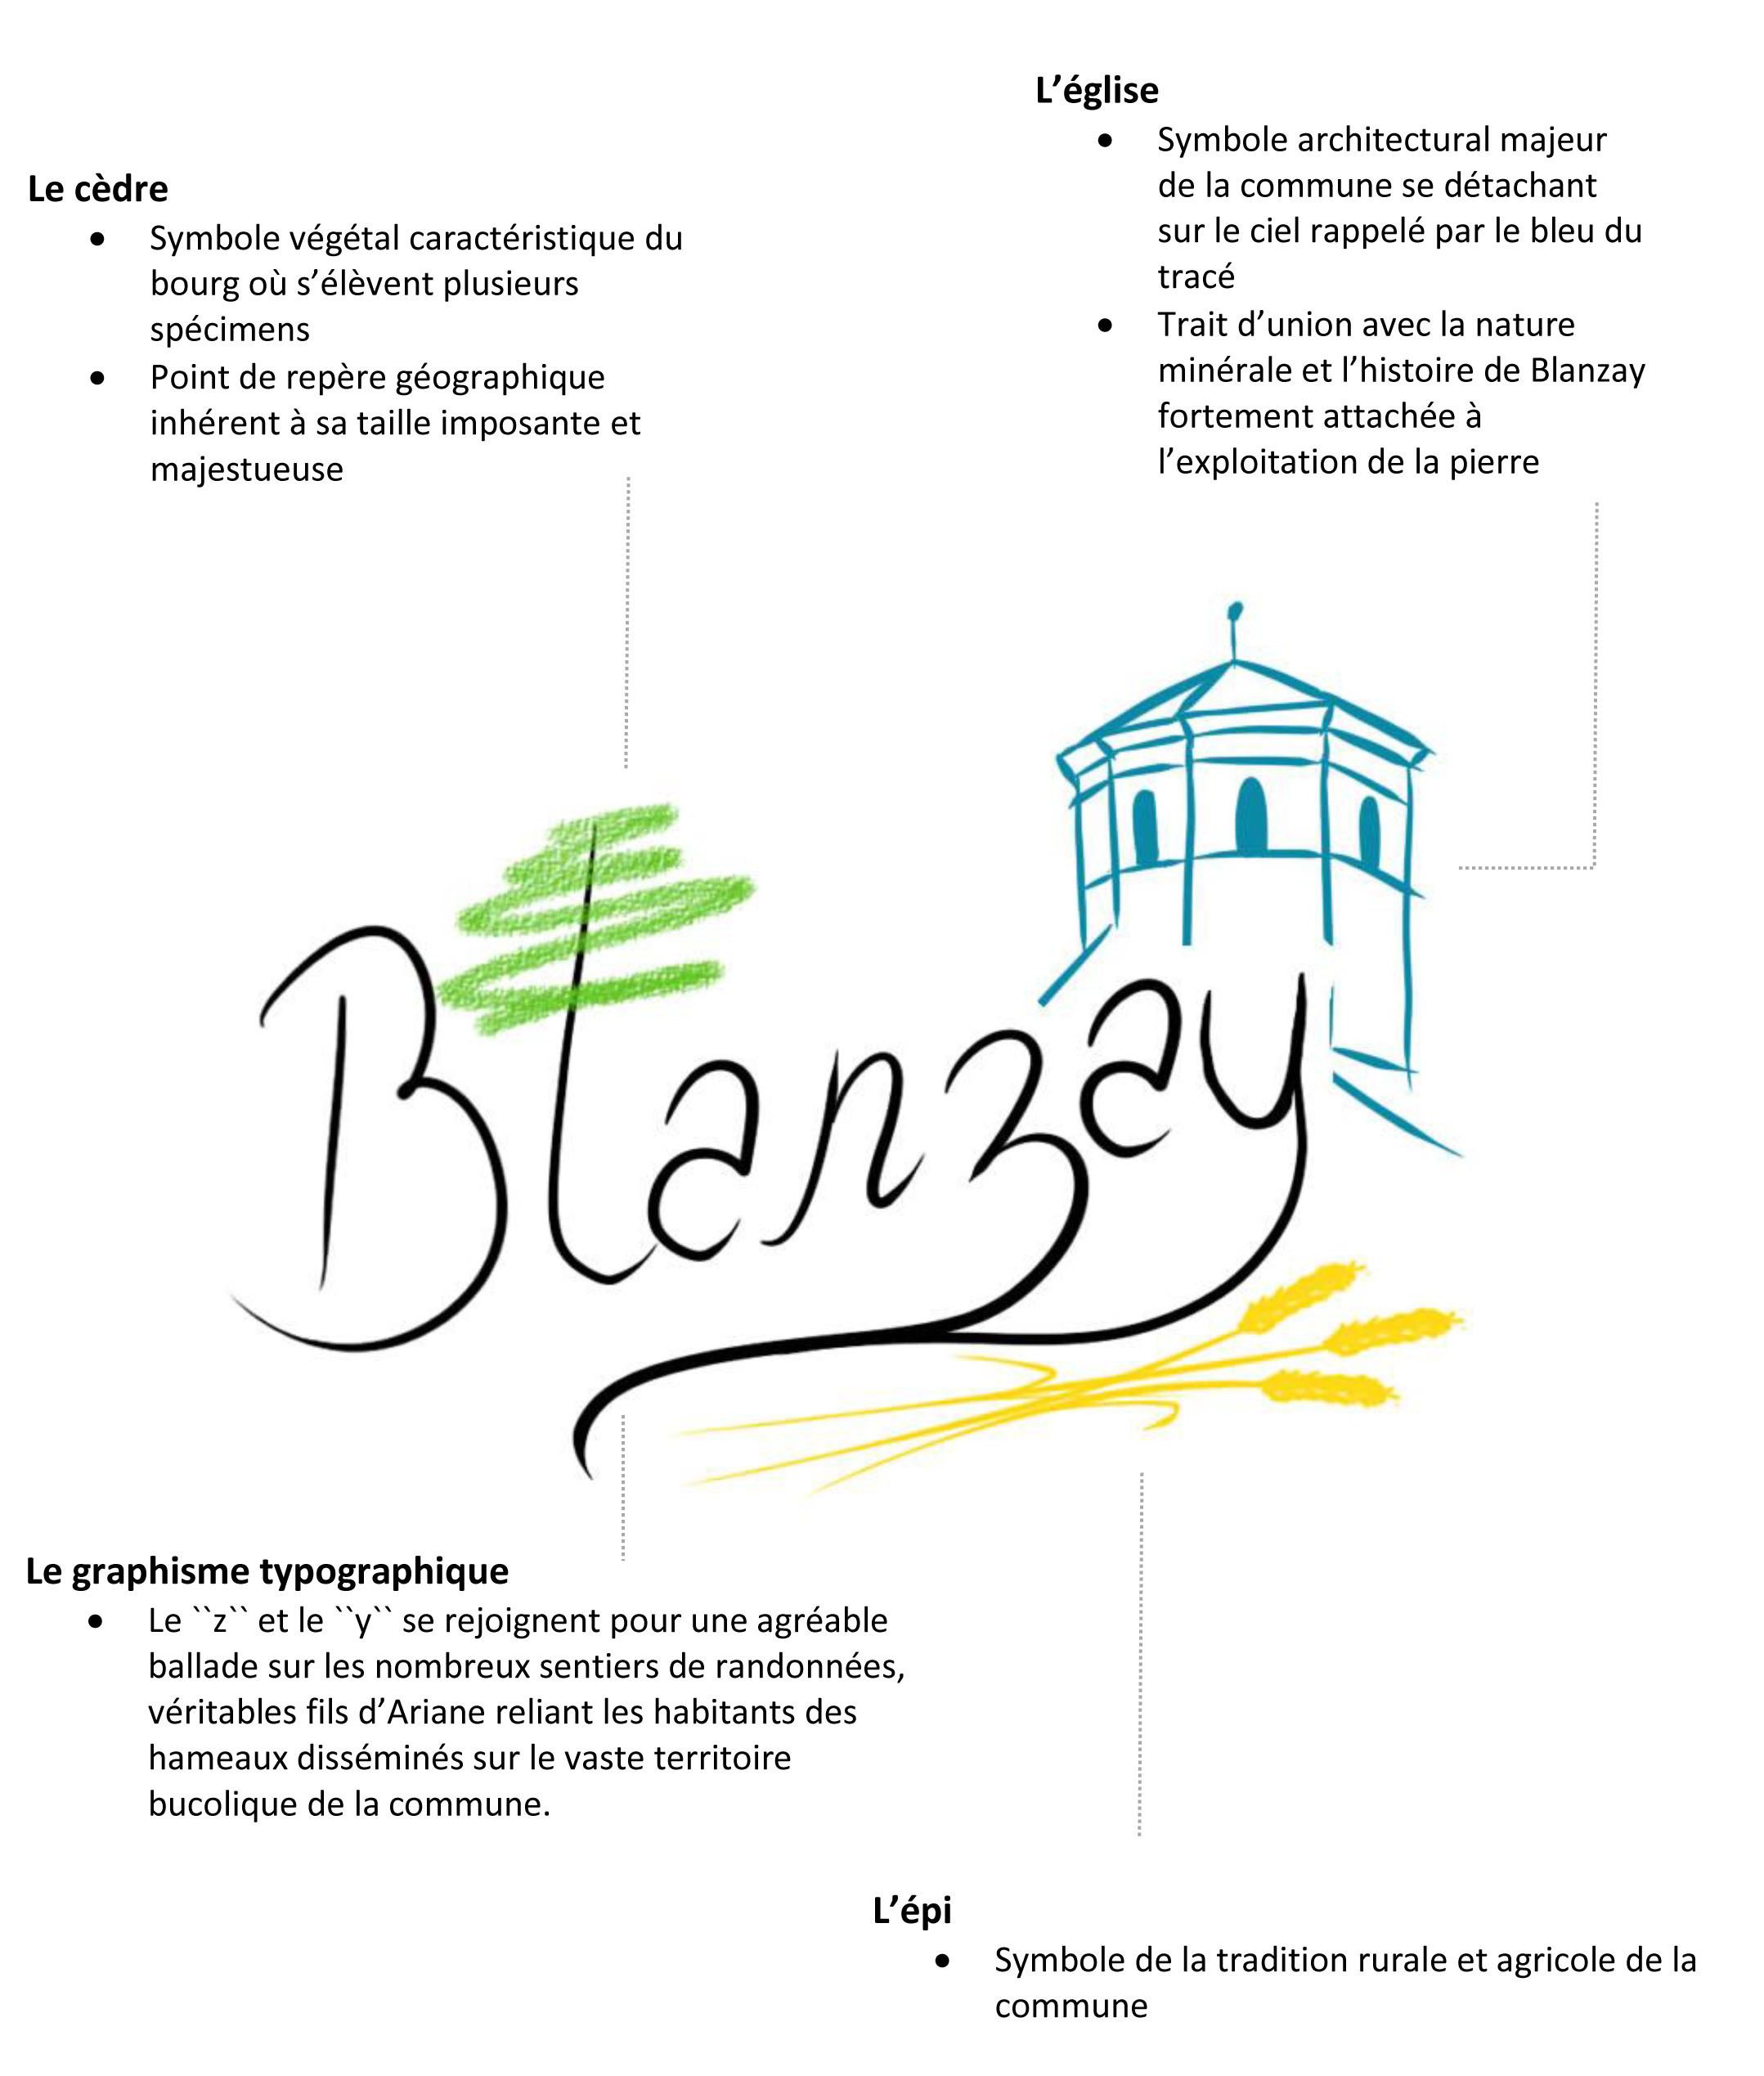 LOGO 2 INTERPRETATION copie